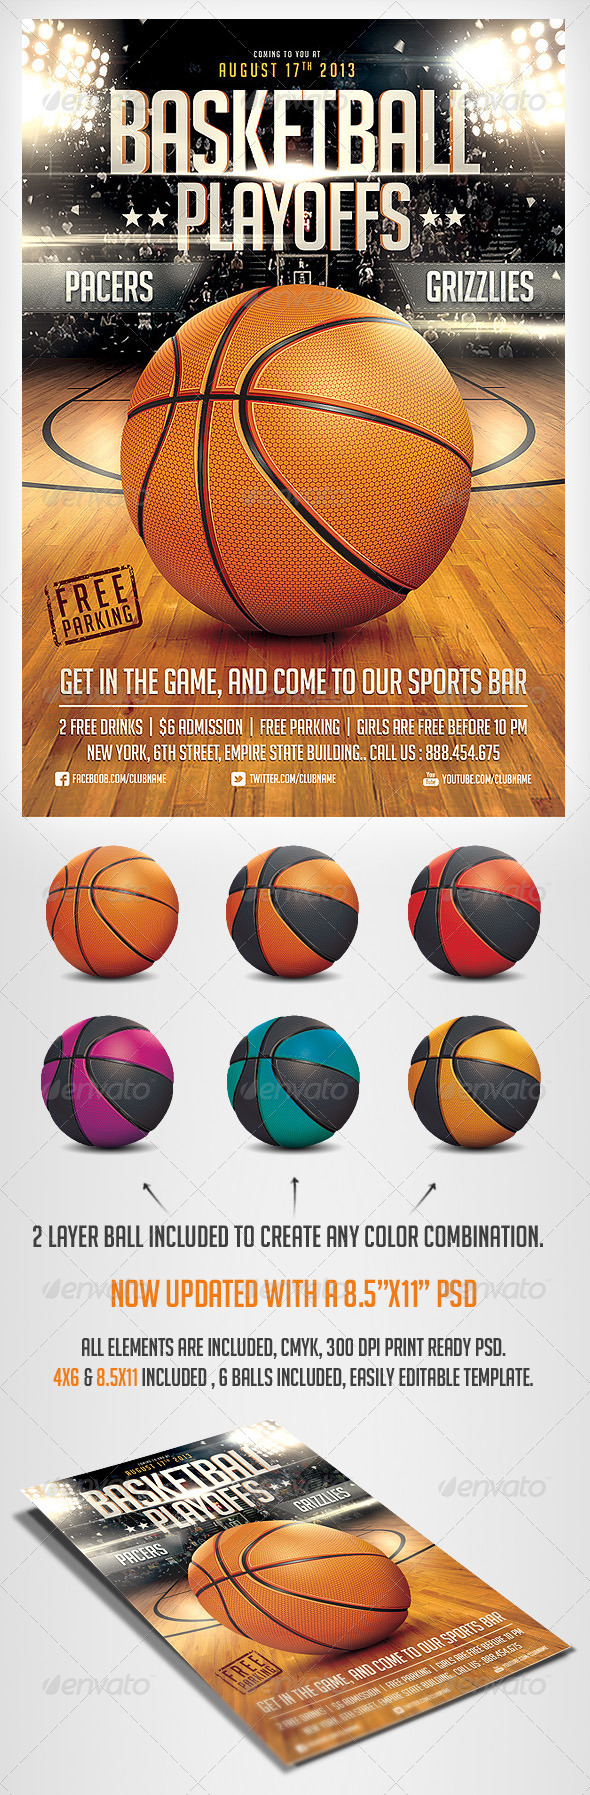 sports day poster template - basketball game flyer template by saltshaker911 graphicriver